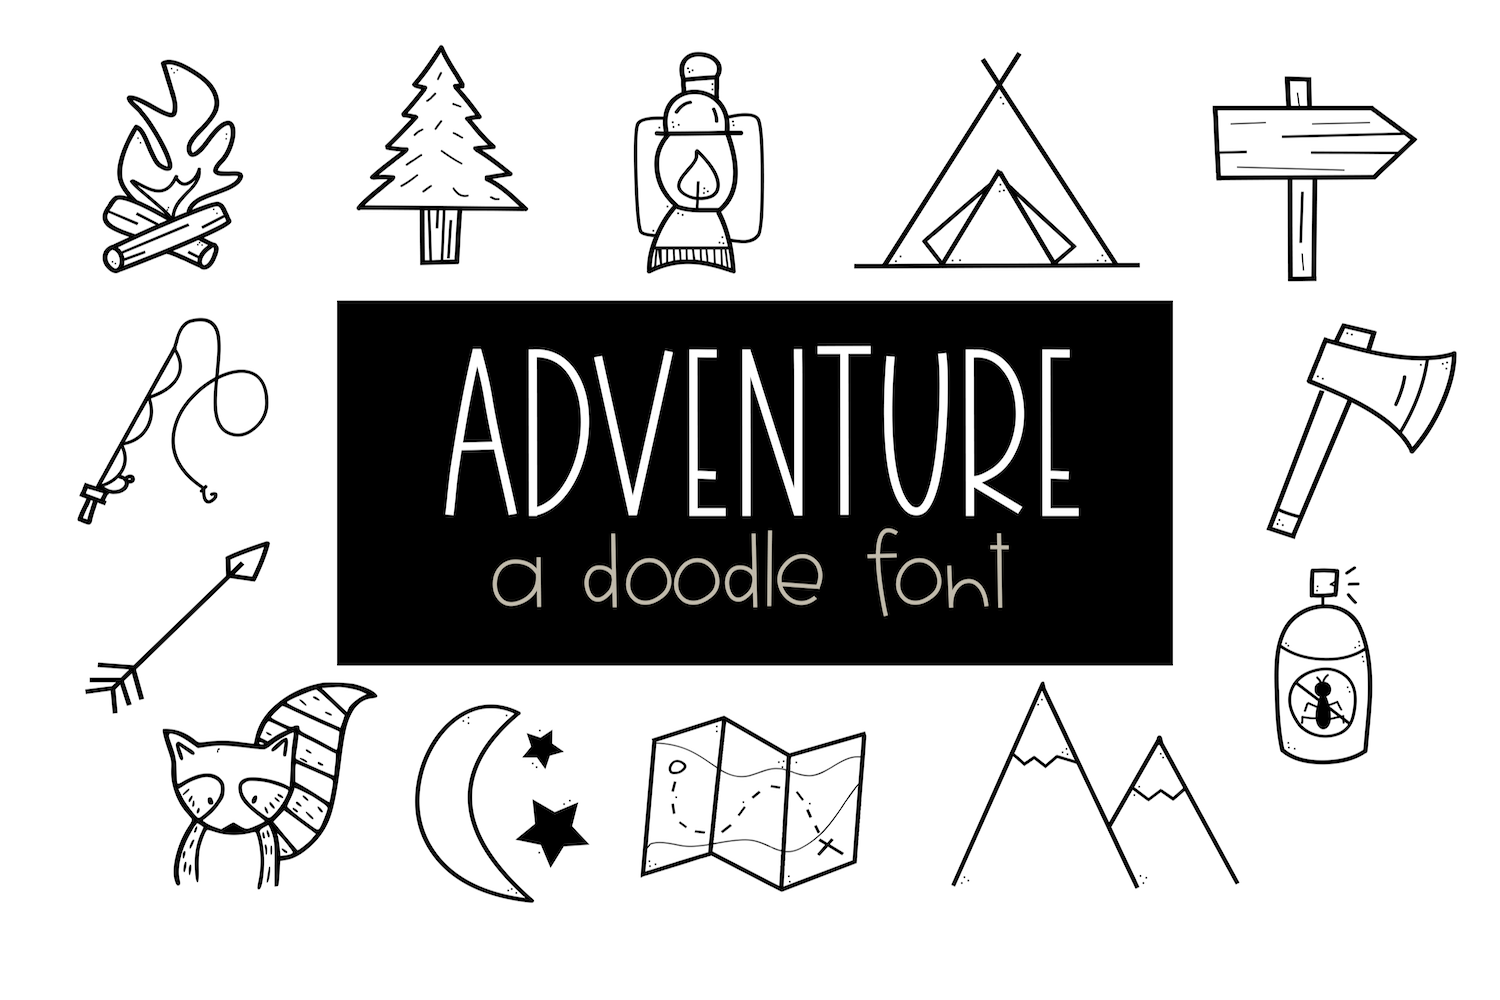 Adventure - A Camping & Outdoors Doodles Font example image 1